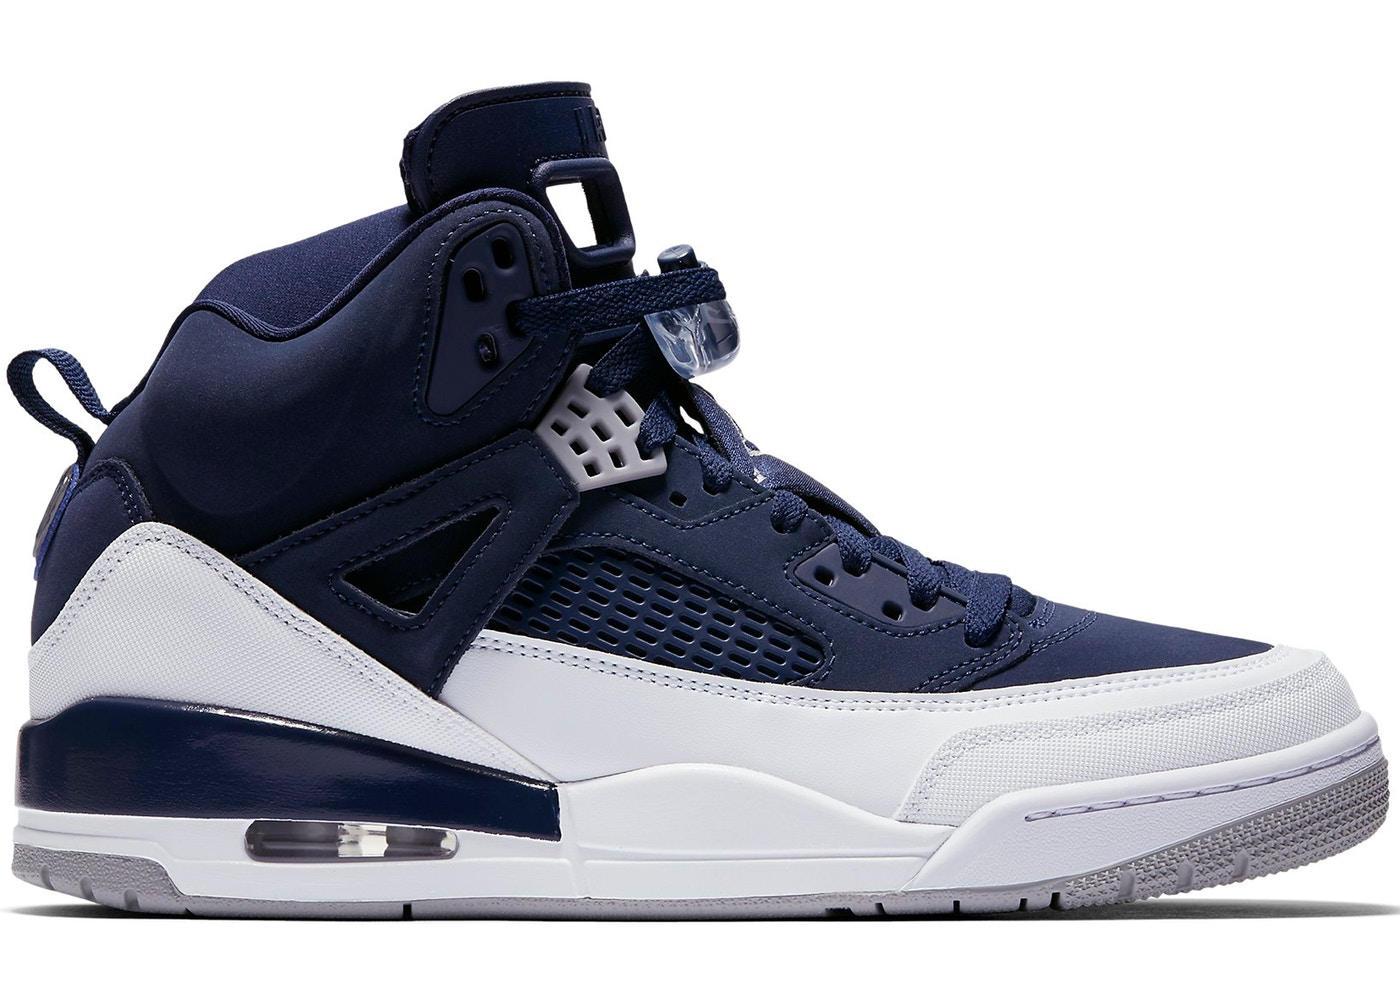 1428f884031895 Jordan Spizike Midnight Navy - 315371-406